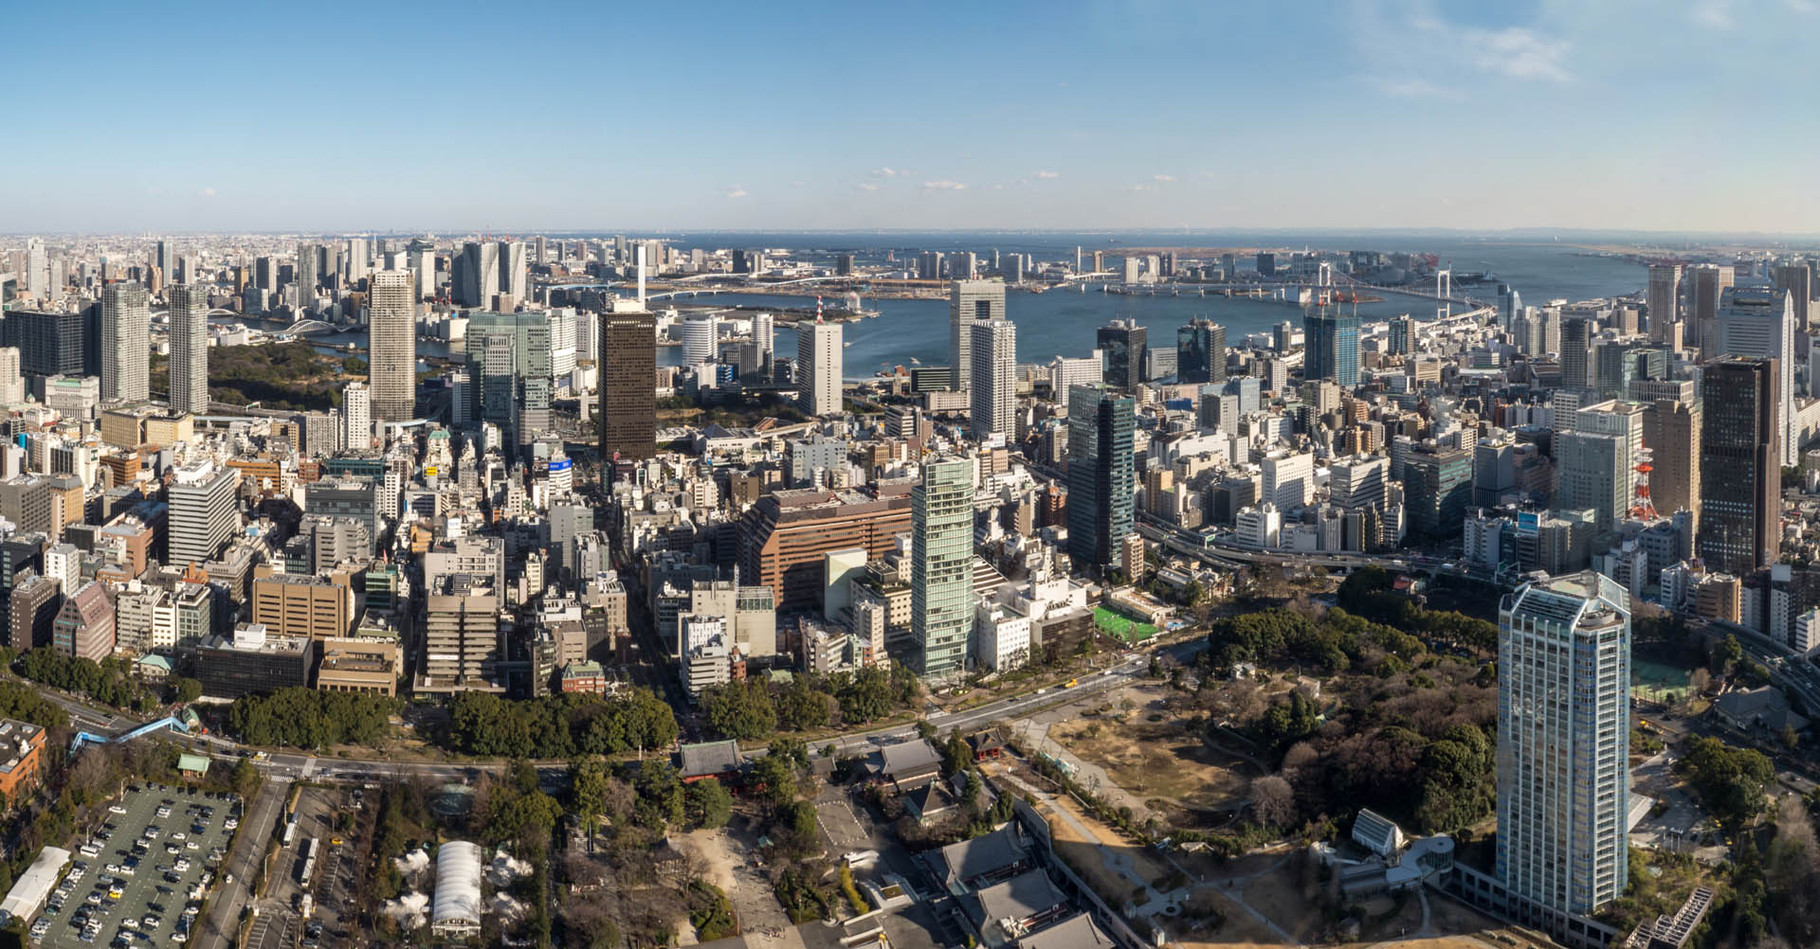 Tokyo harbour, view from Tokyo Tower